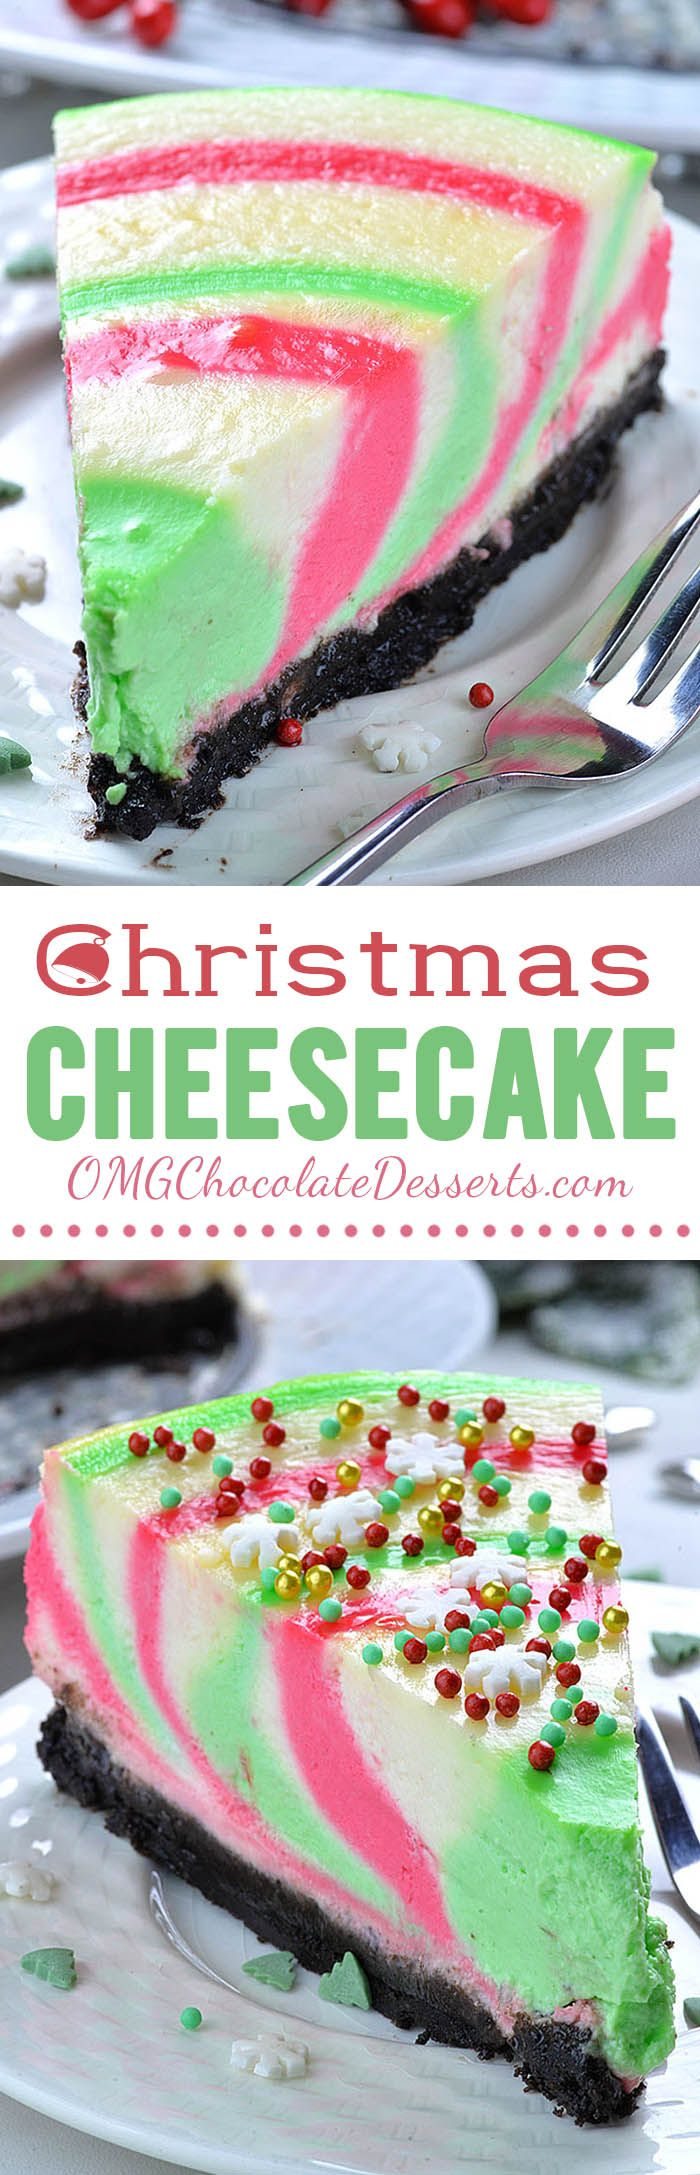 This Christmas cheesecake is the perfect dessert for Christmas. Everyone will surely love this dessert, especially the kids.